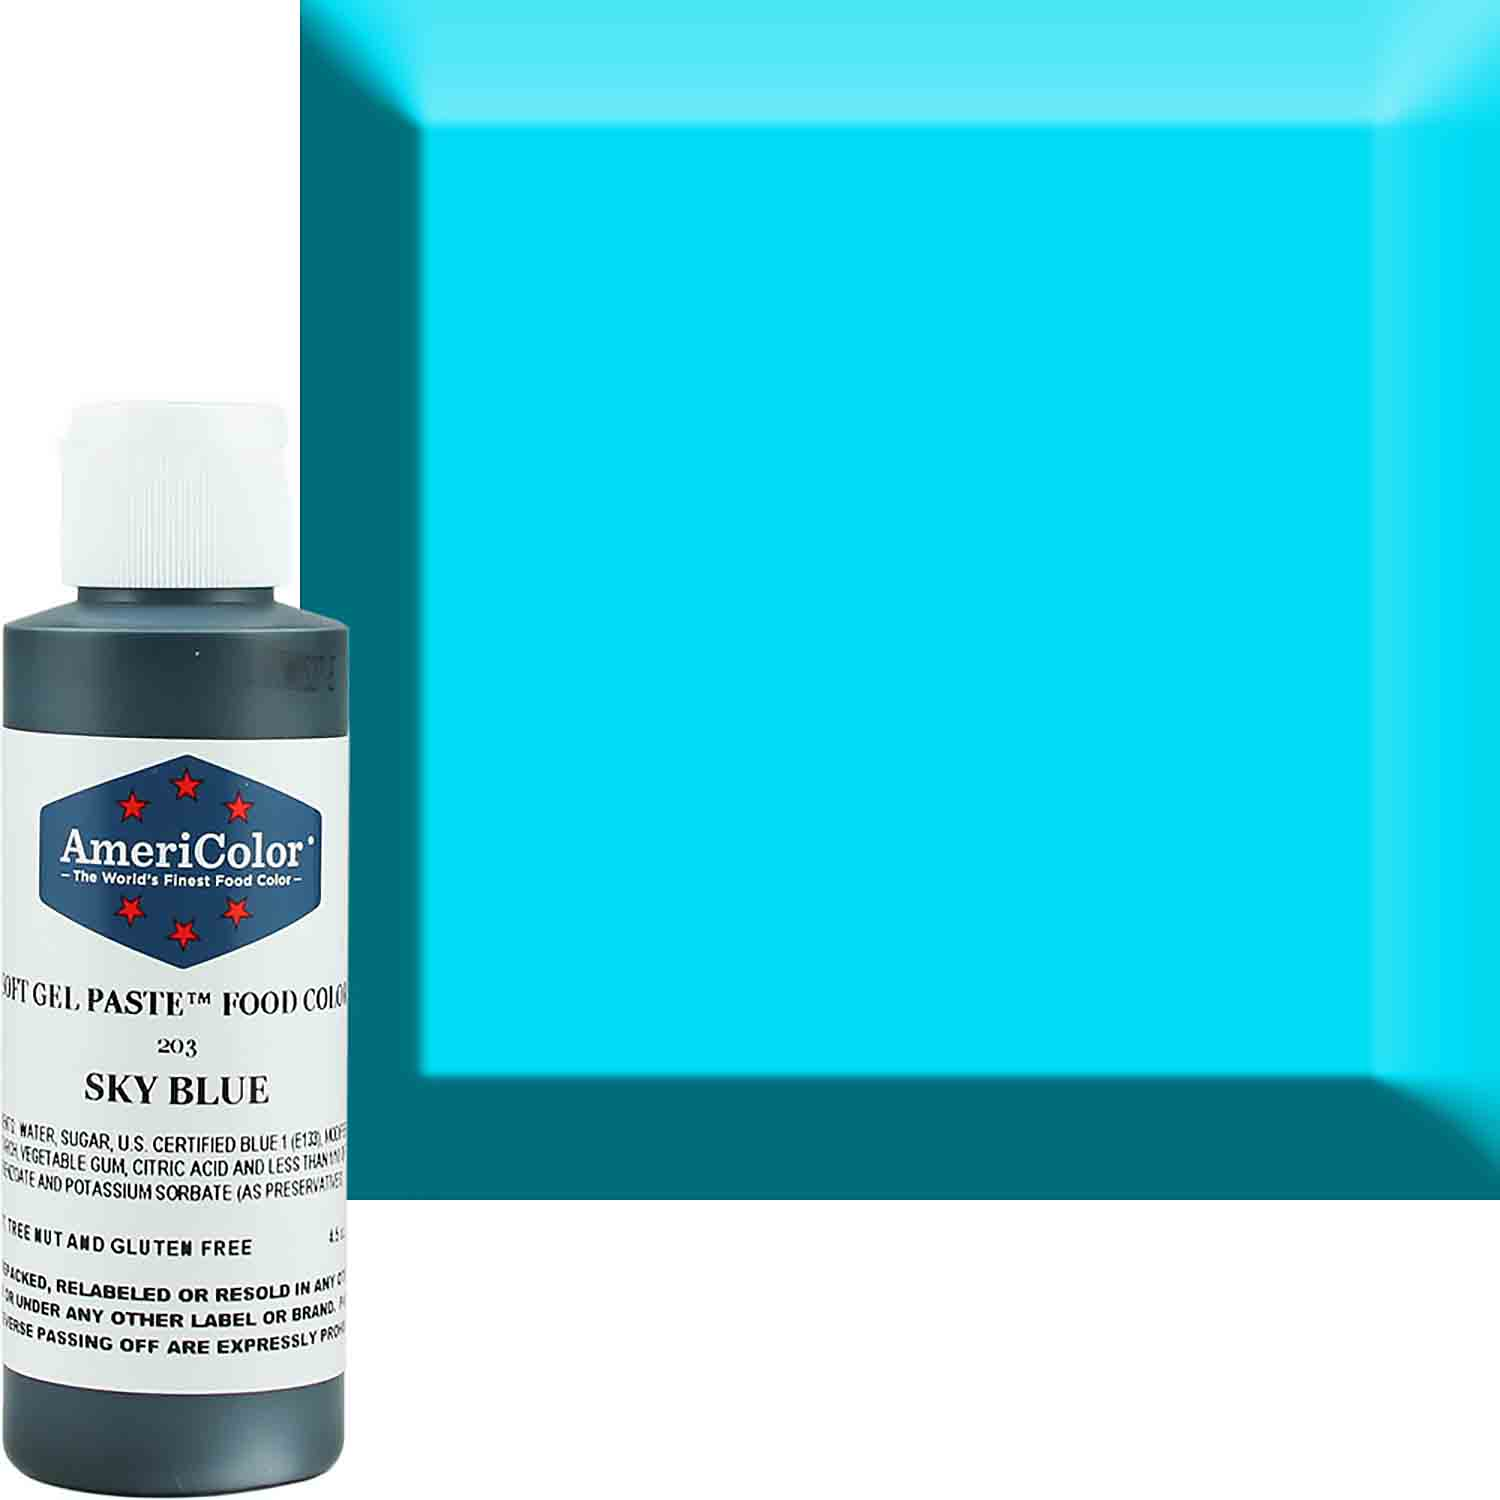 Sky Blue AmeriColor® Soft Gel Paste™ Food Color